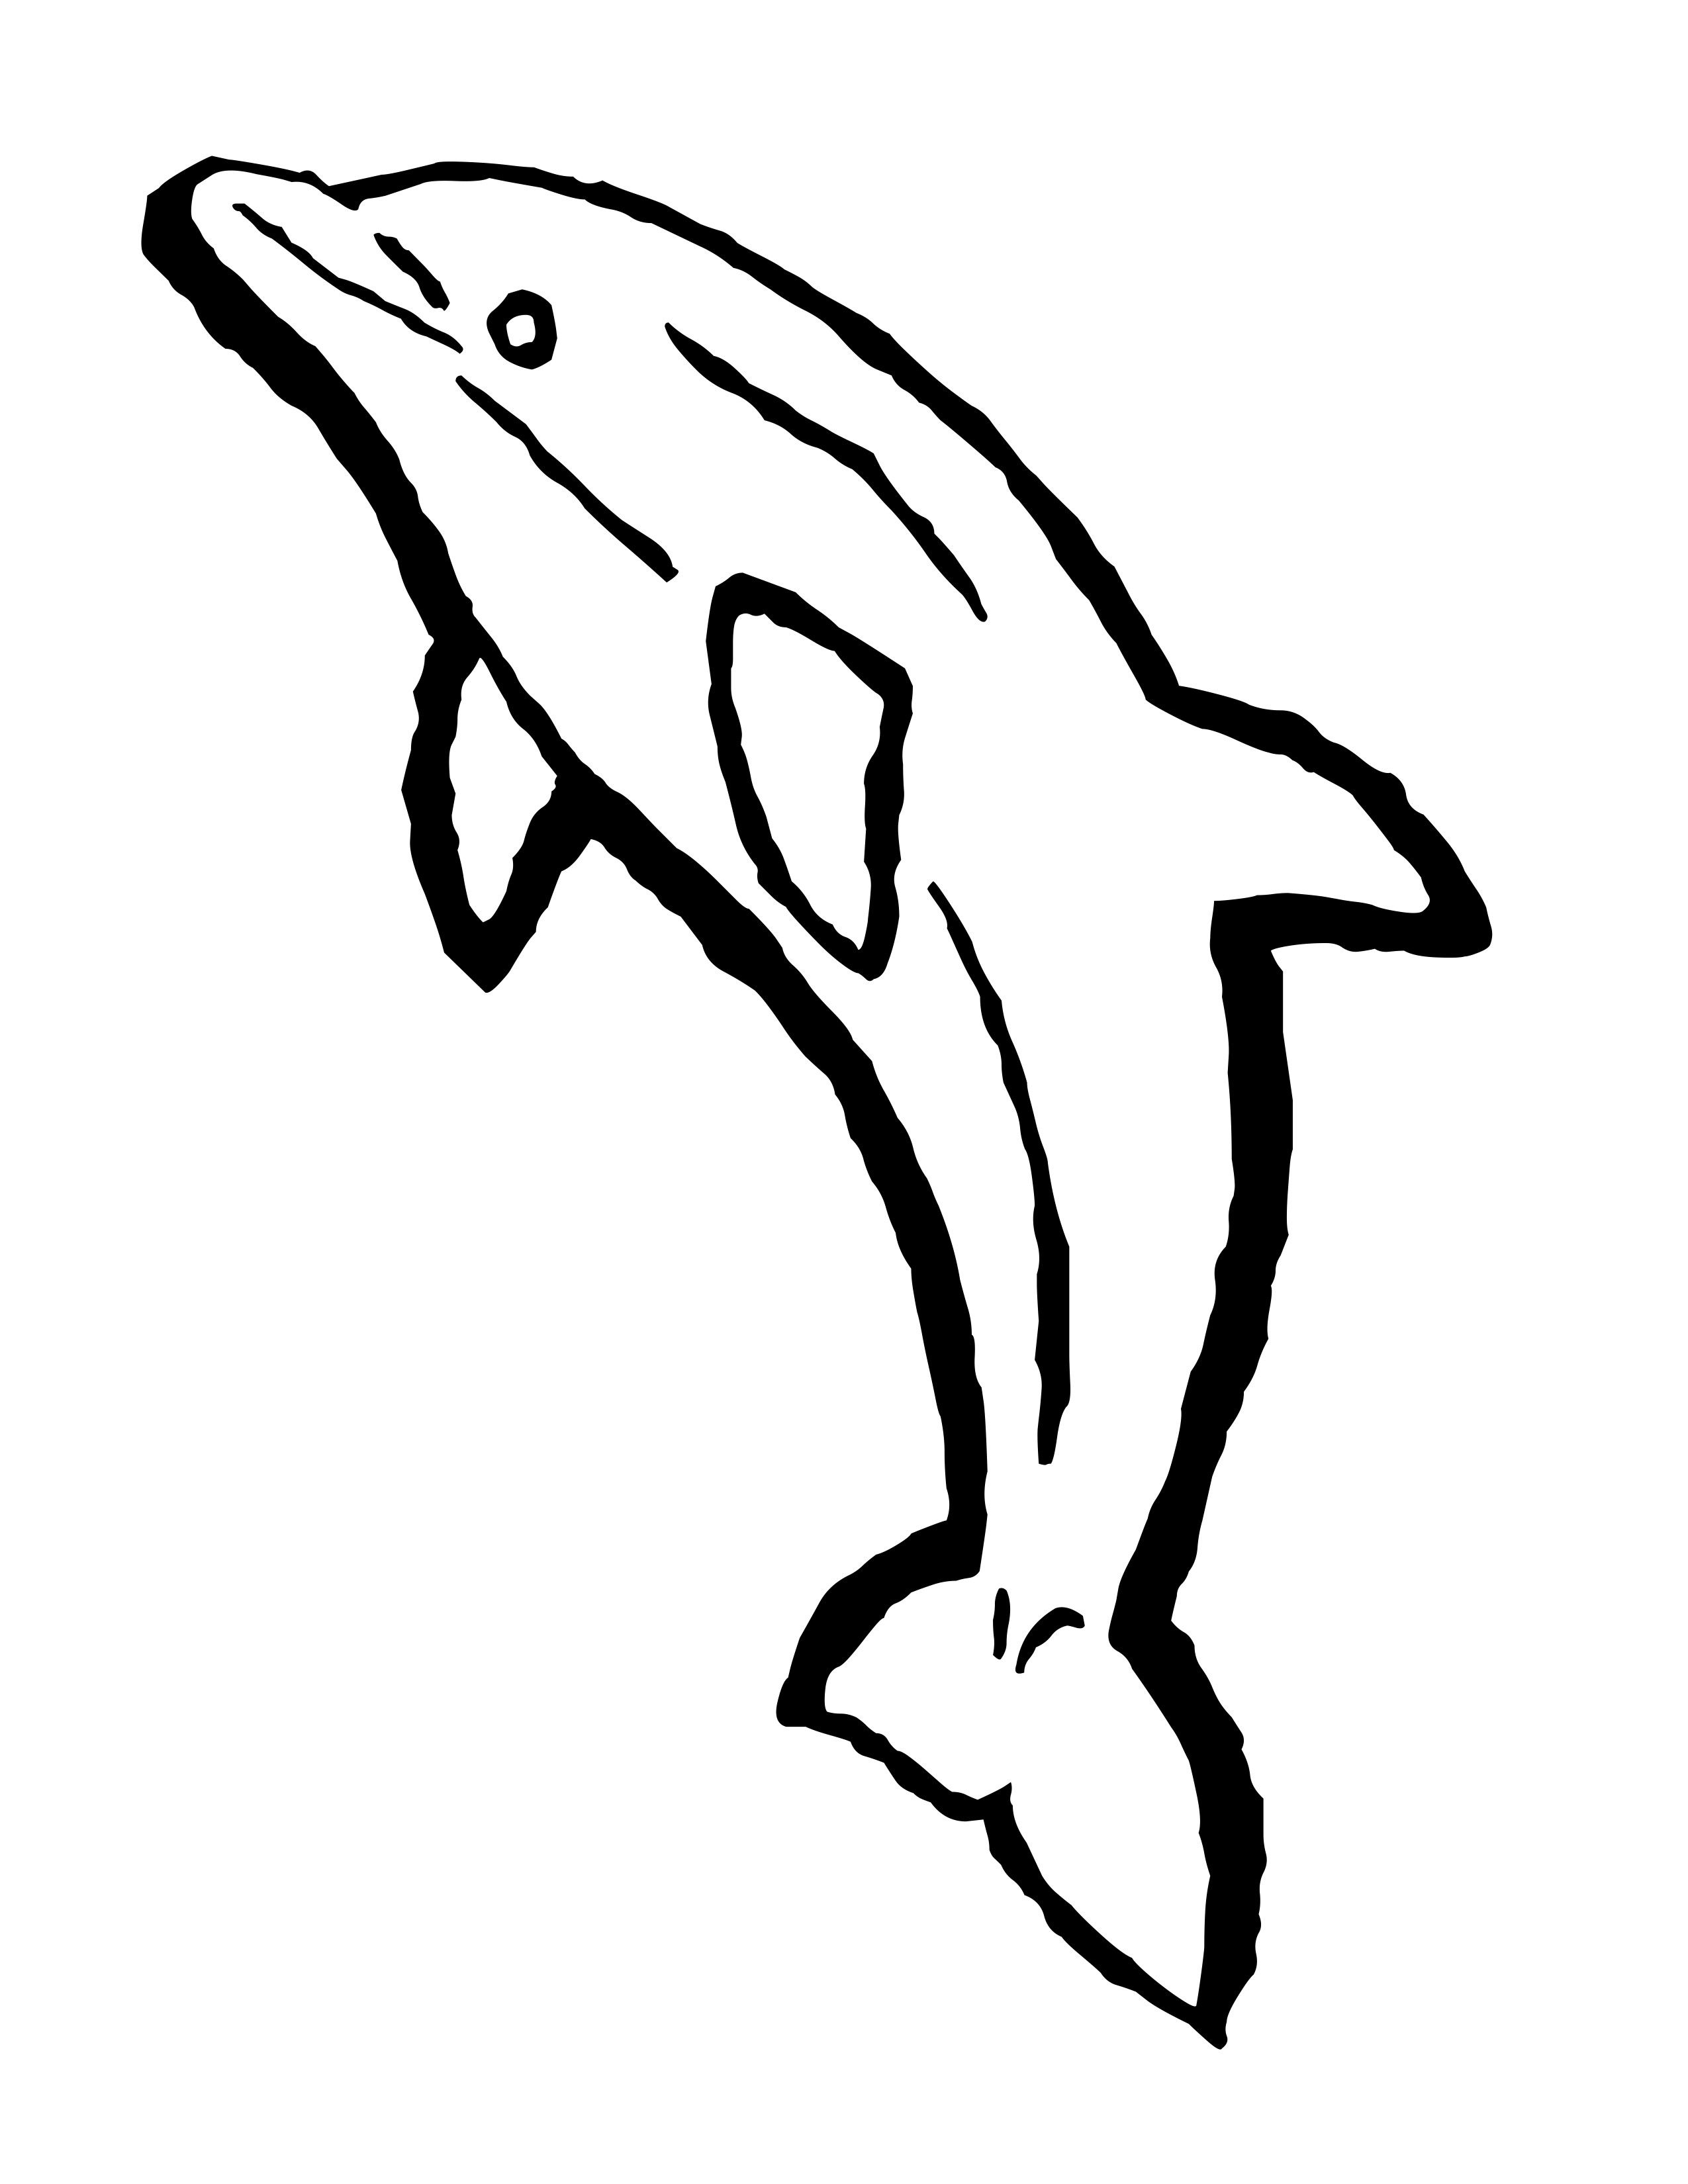 Dolphin Coloring Pages Dolphin Coloring Pages Shark Coloring Pages Coloring Pages